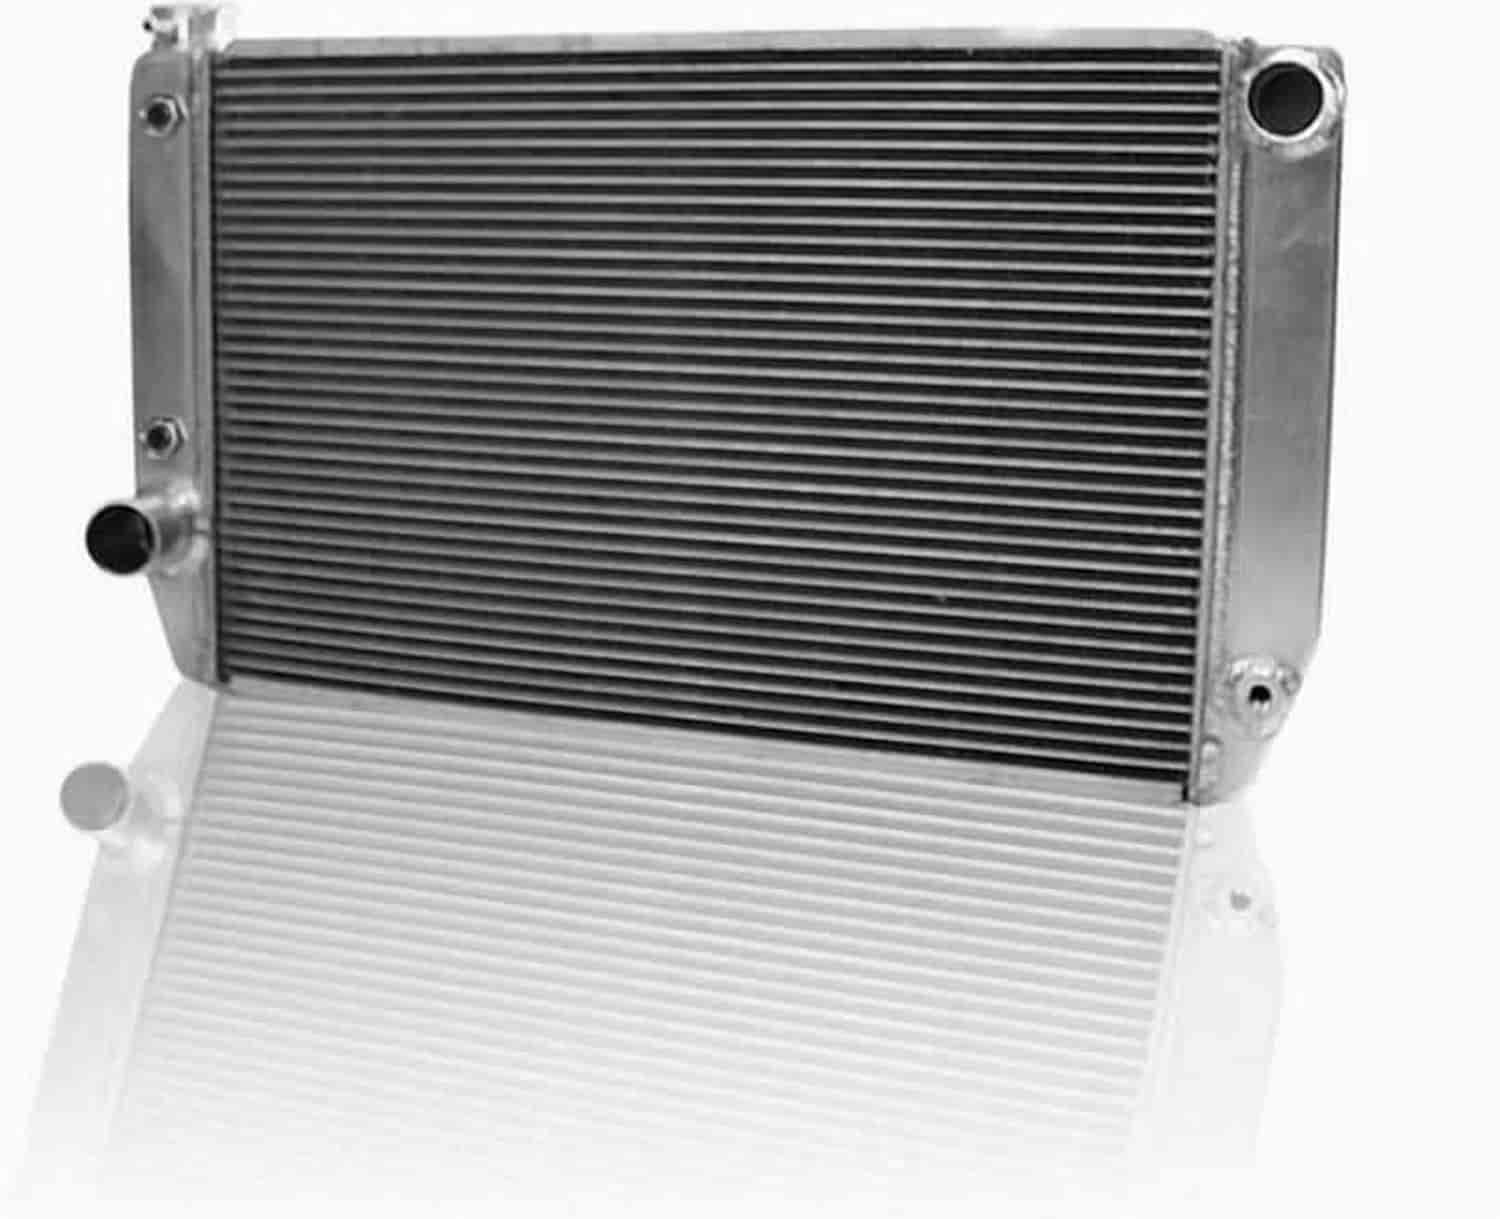 Griffin Radiators 1-26241-T